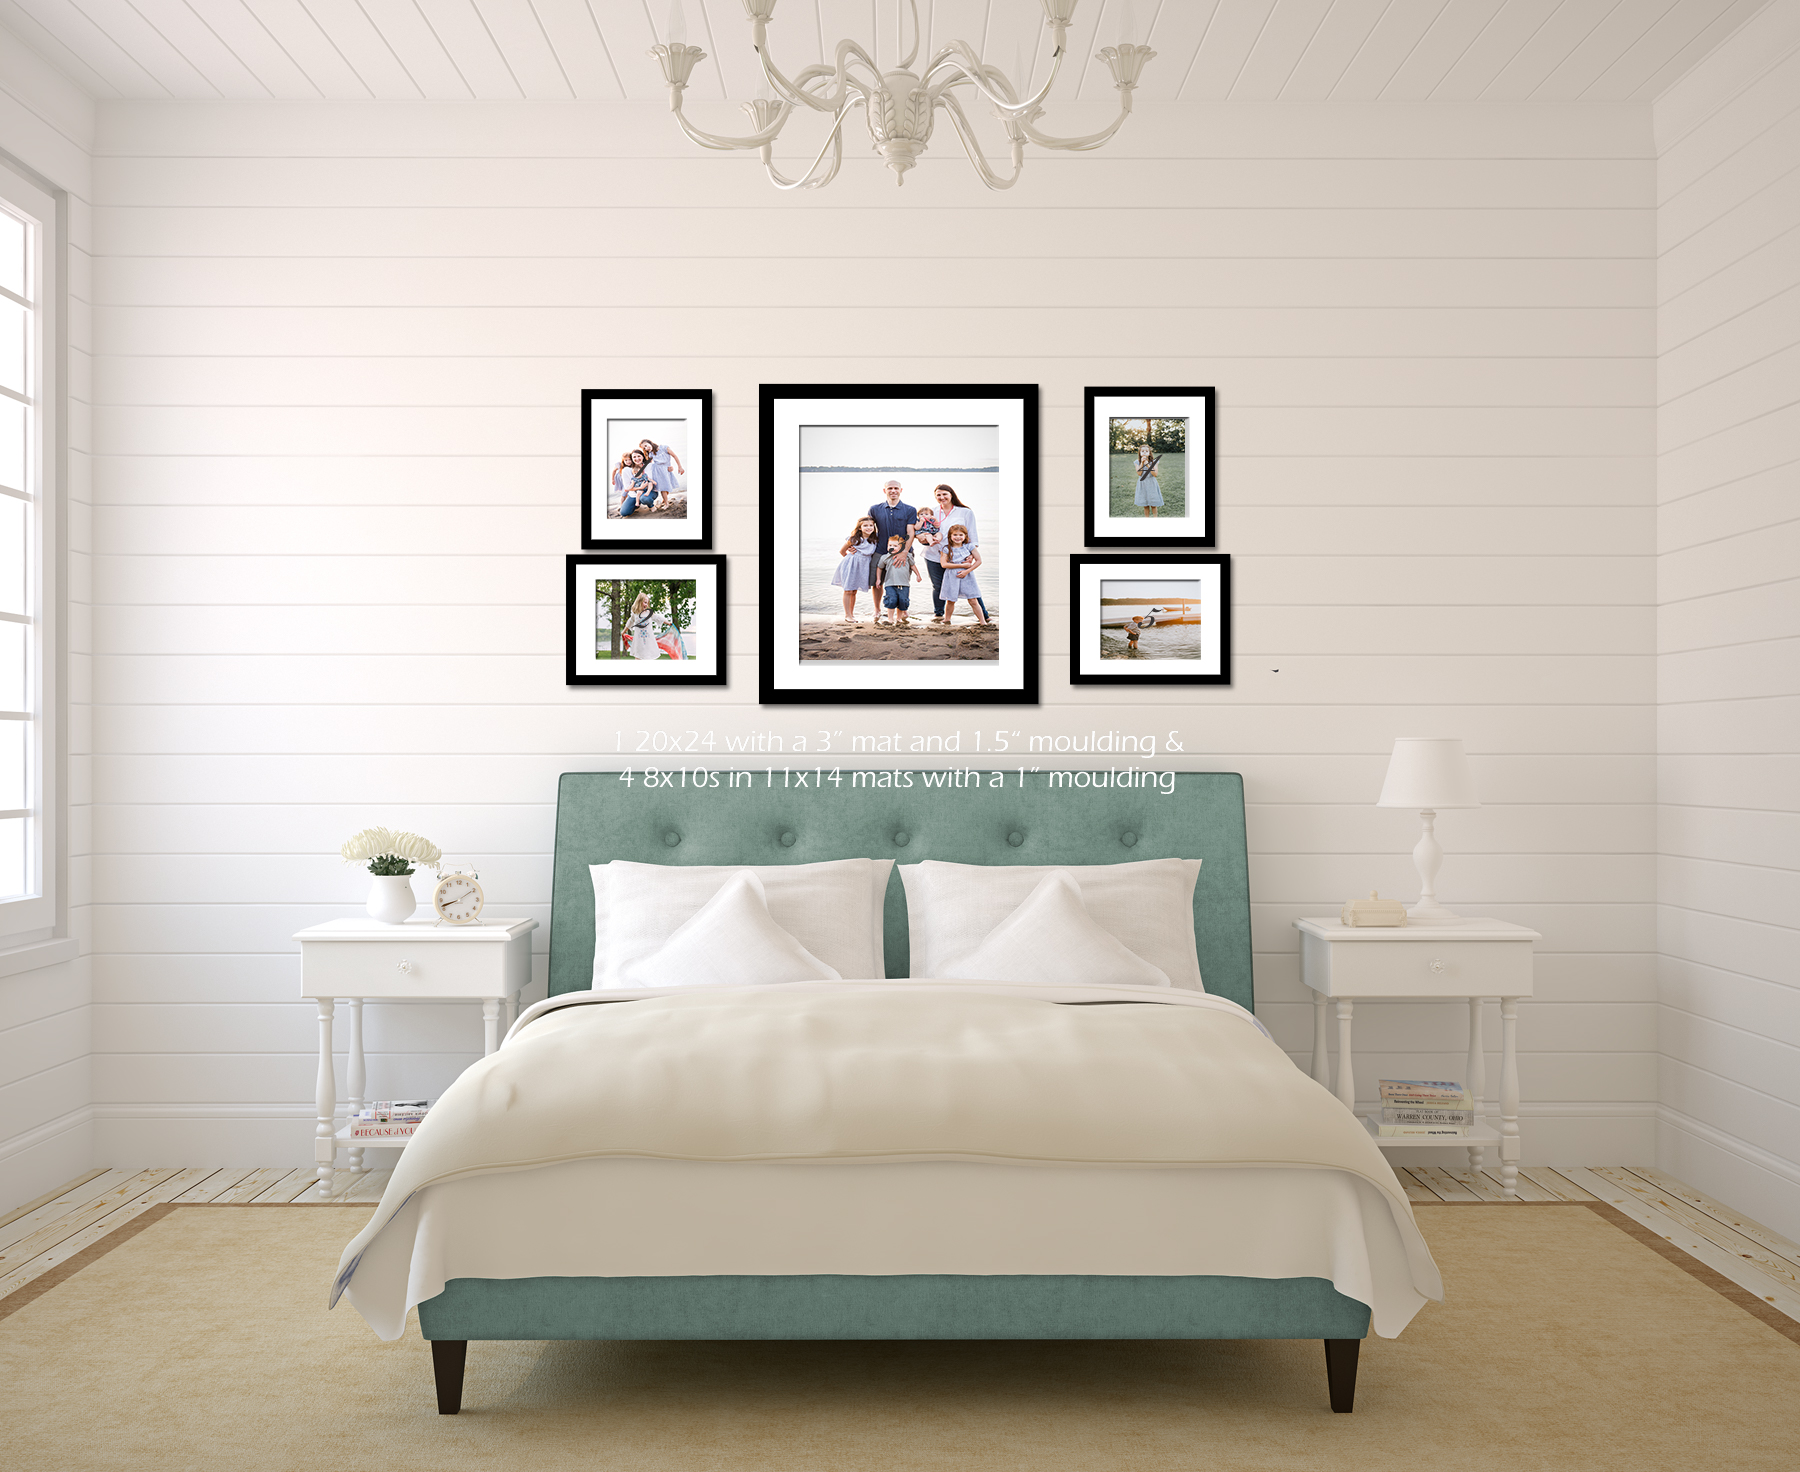 bedroom with green bed and framed family photos - Family Photography of Minneapolis